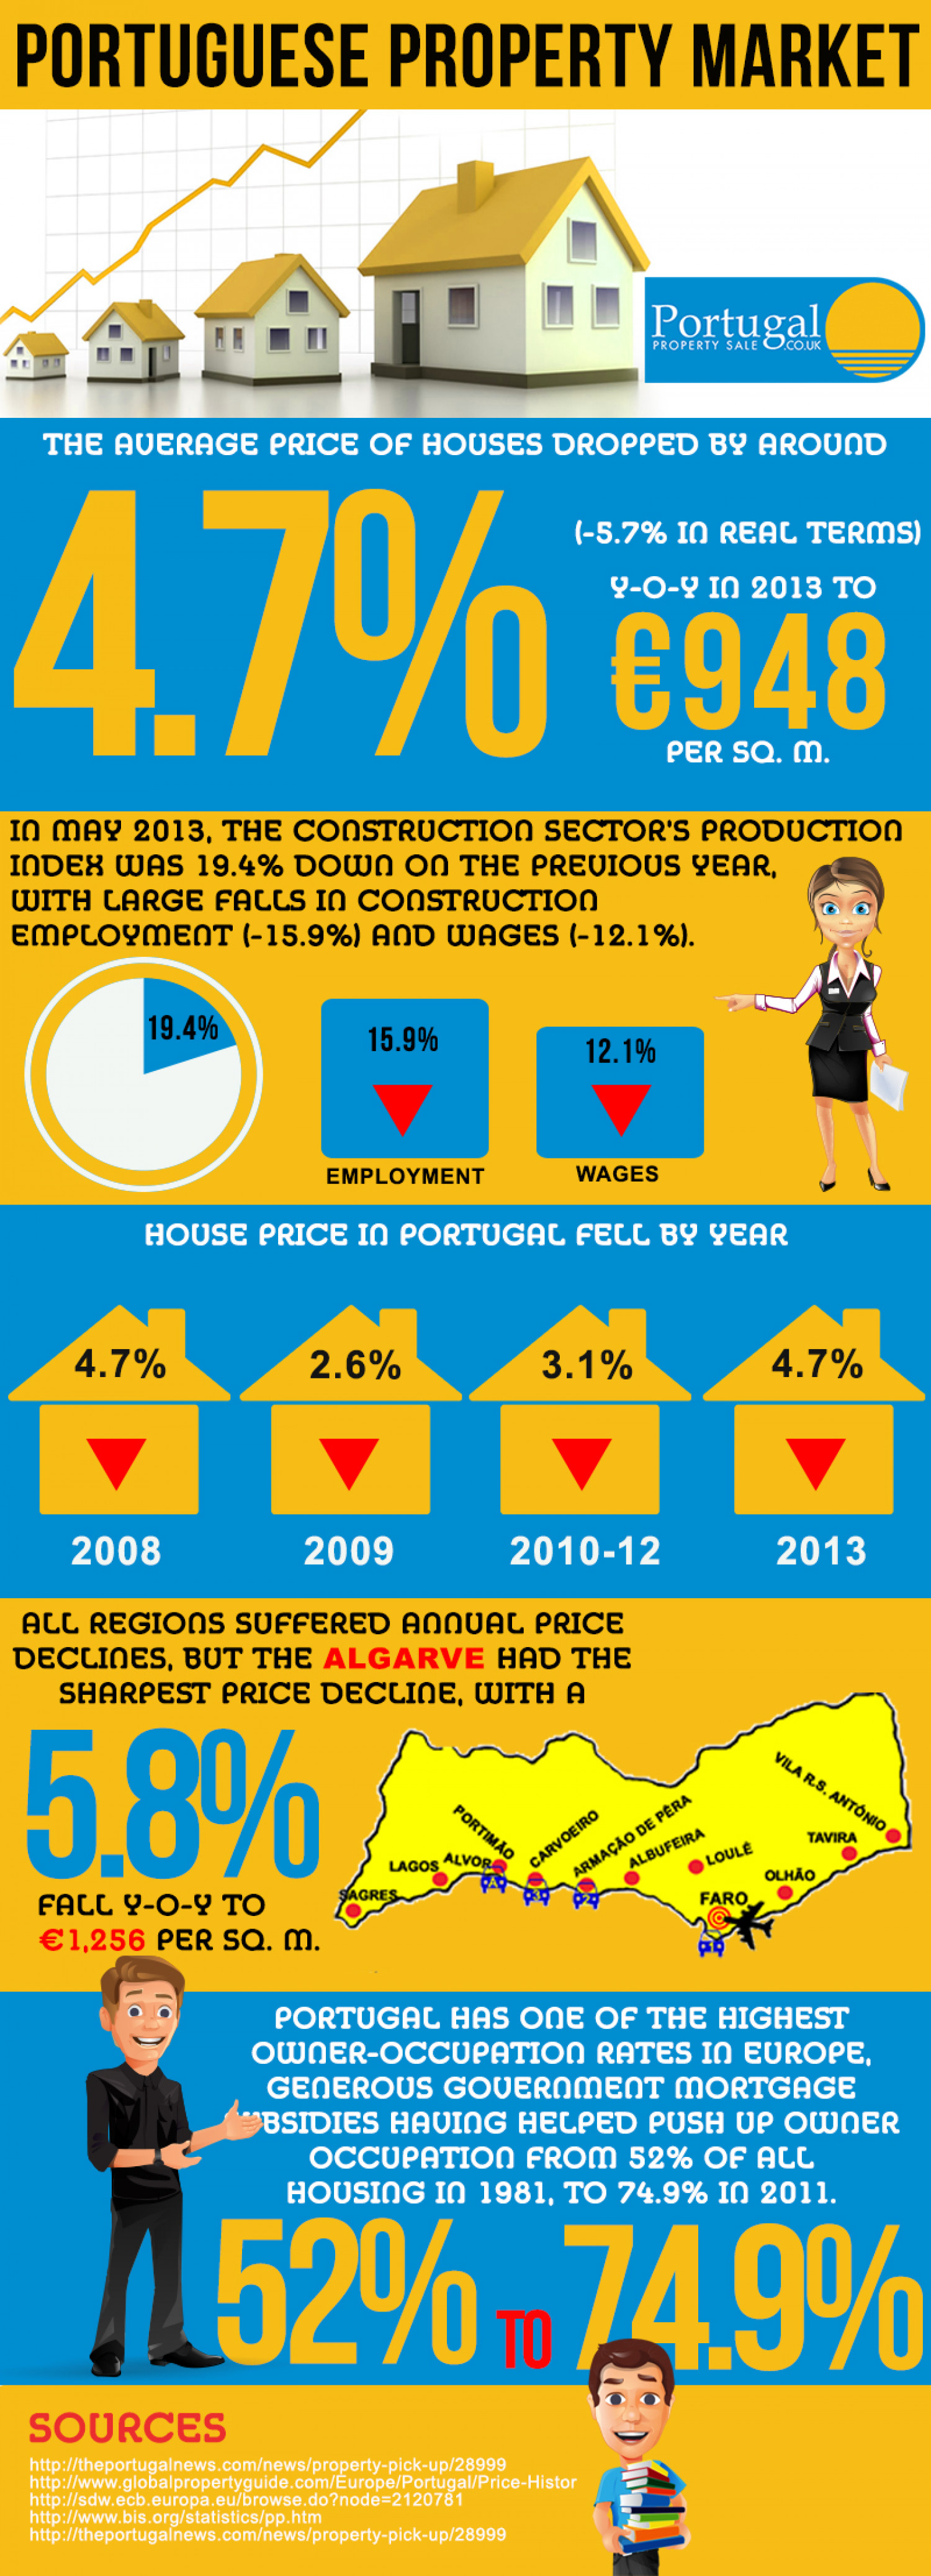 Portuguese Property Mark Infographic